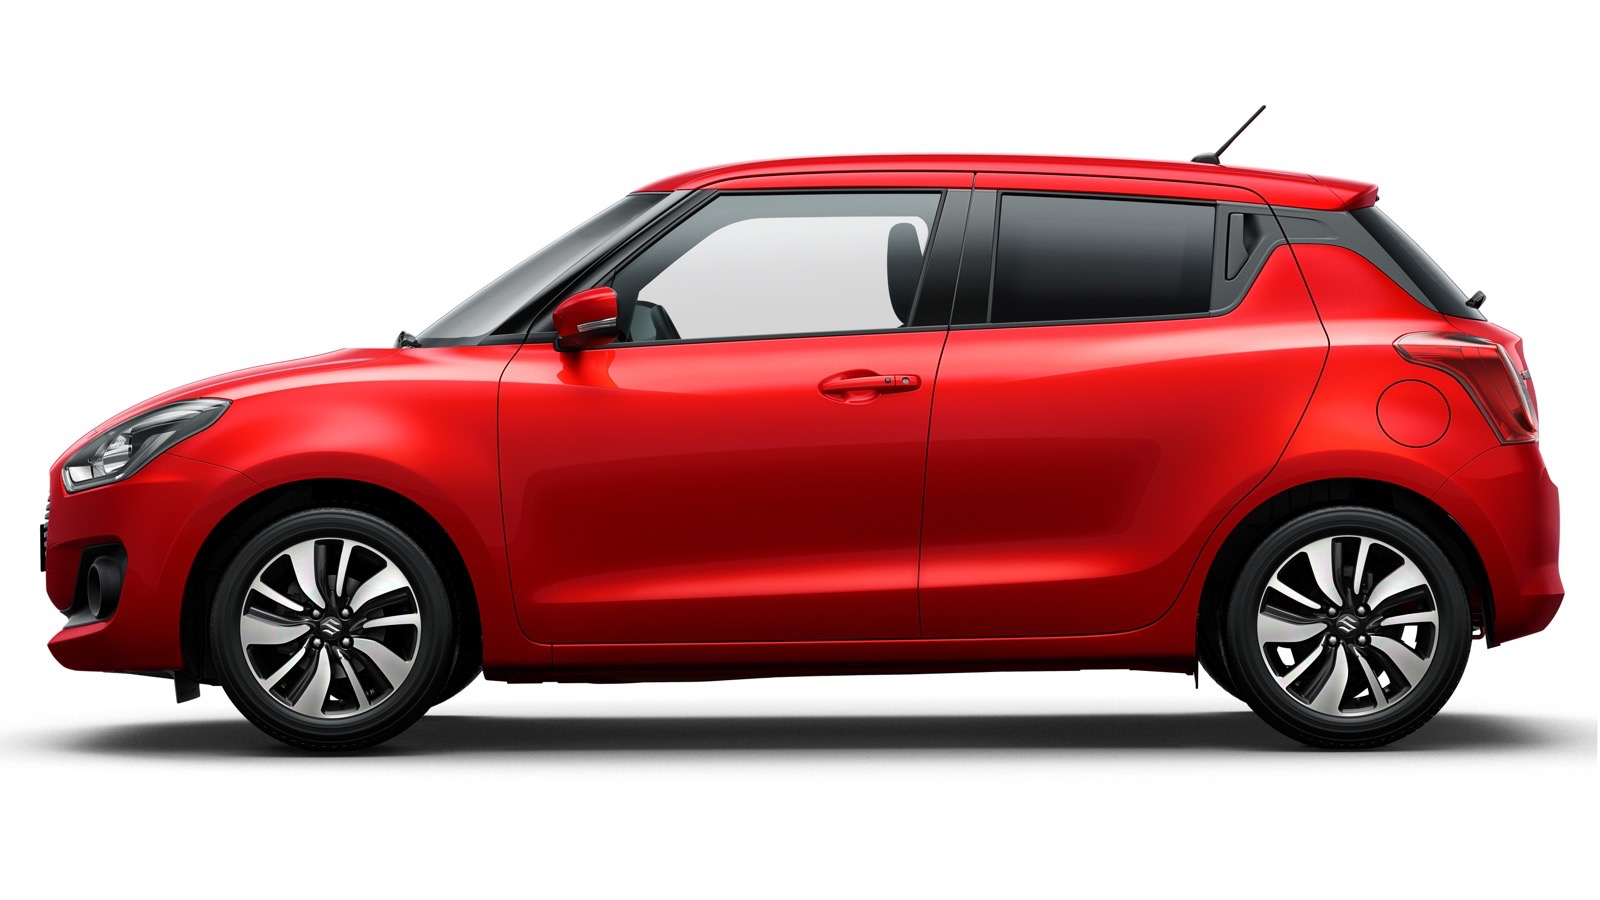 Suzuki_Swift_greek_presentation_69